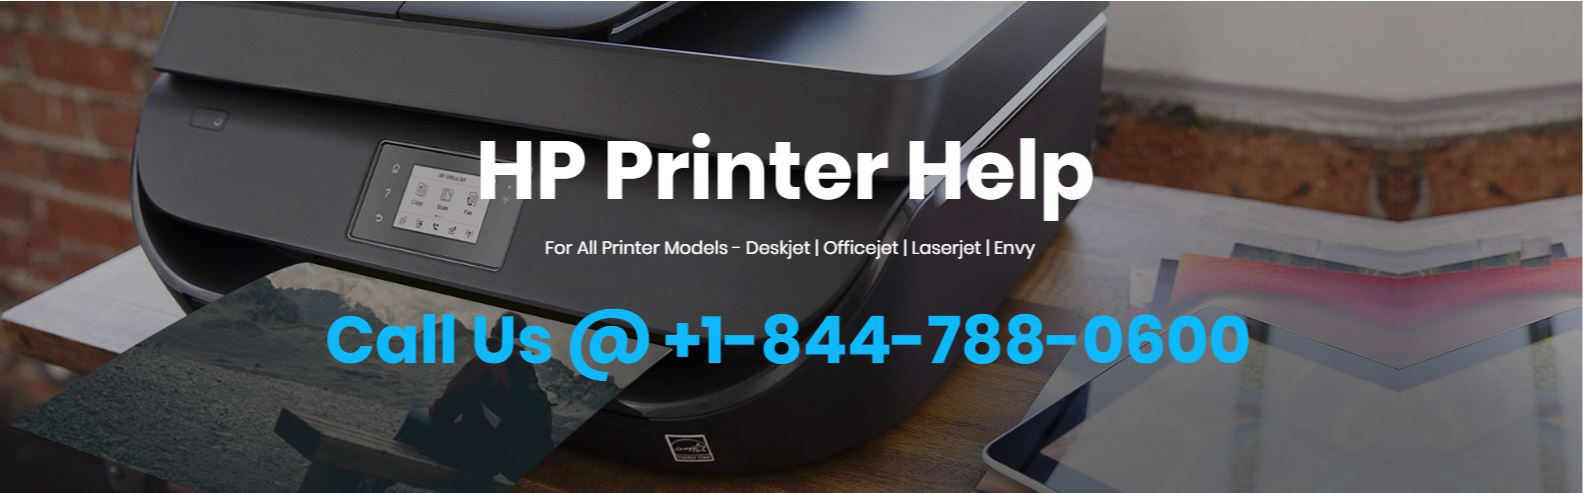 HP OfficeJet Pro 8600 printhead issue